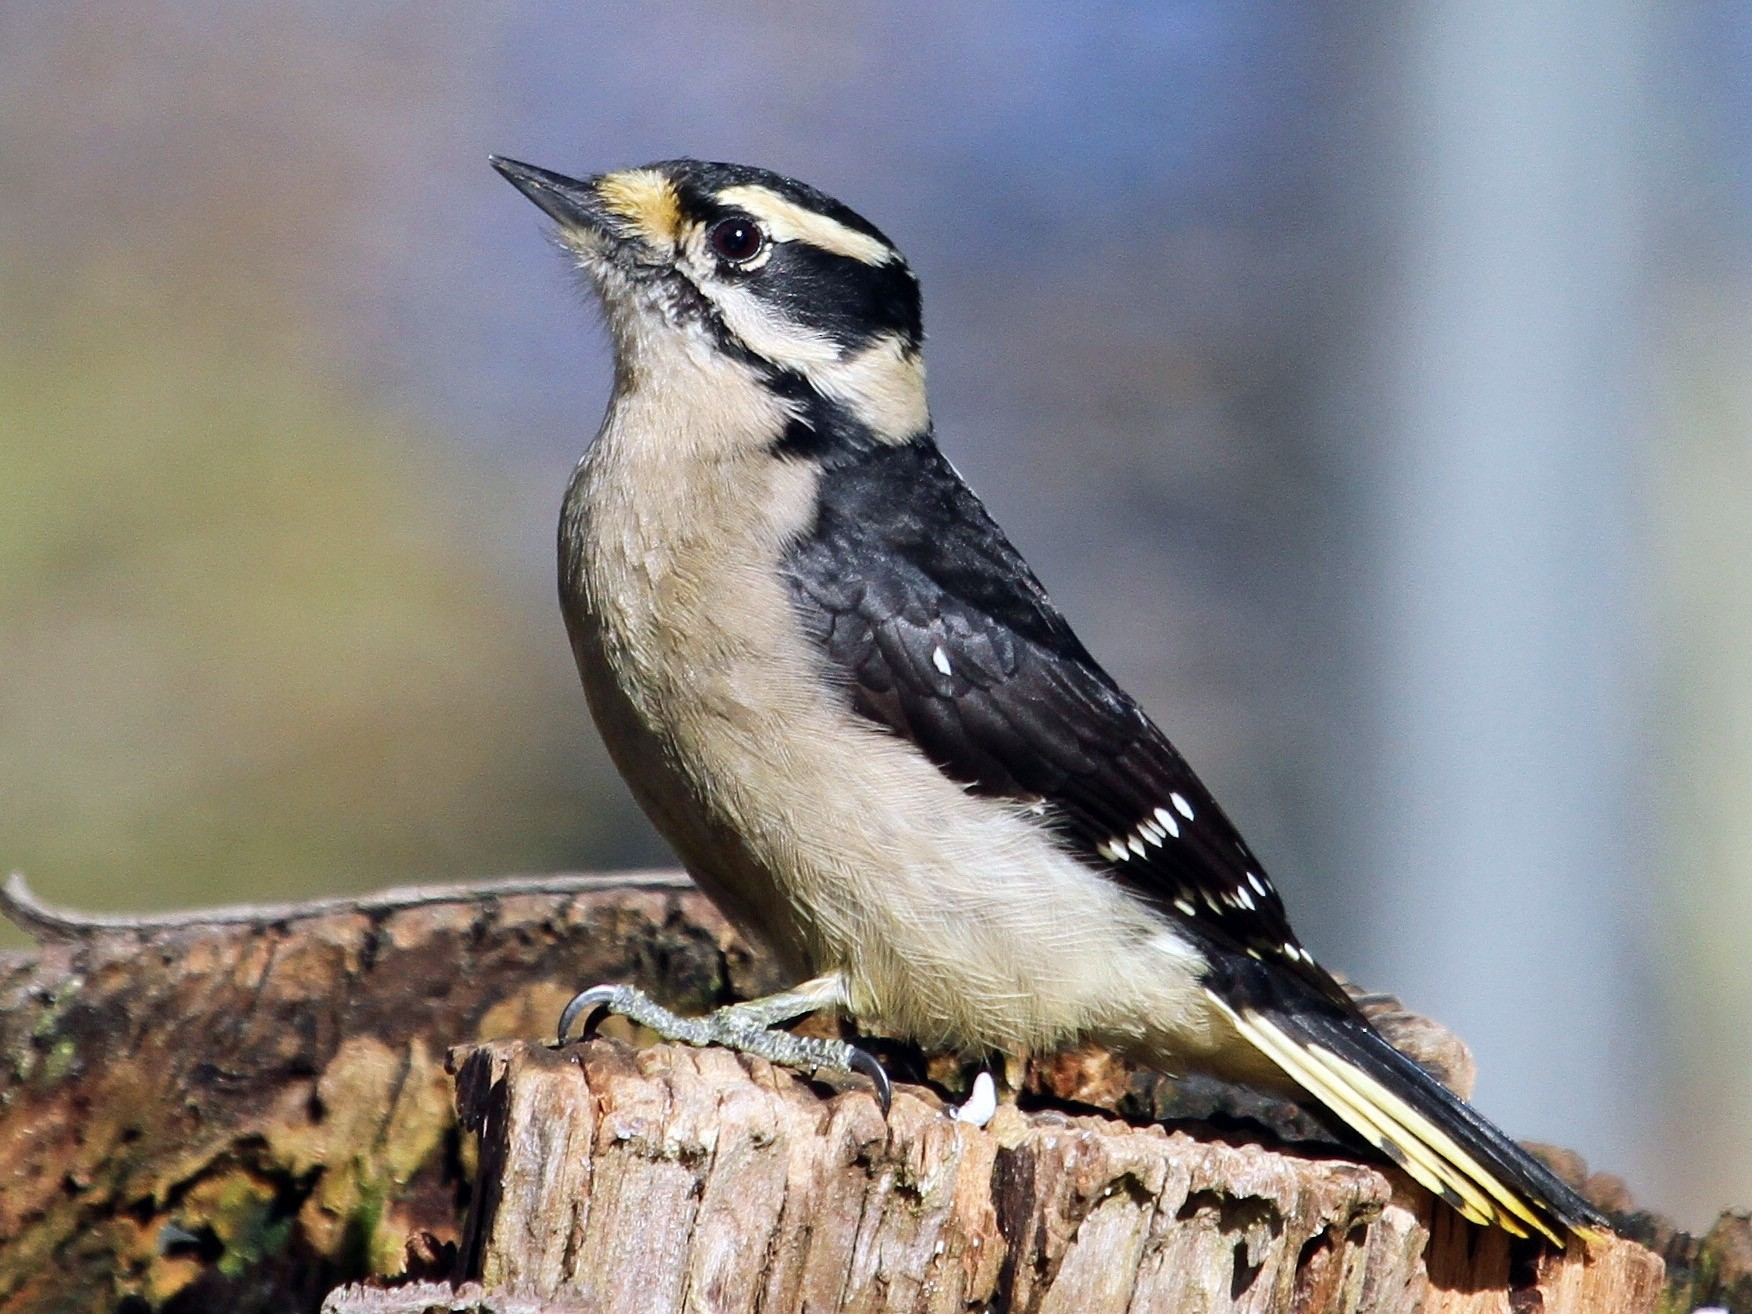 Downy Woodpecker - John F. Gatchet